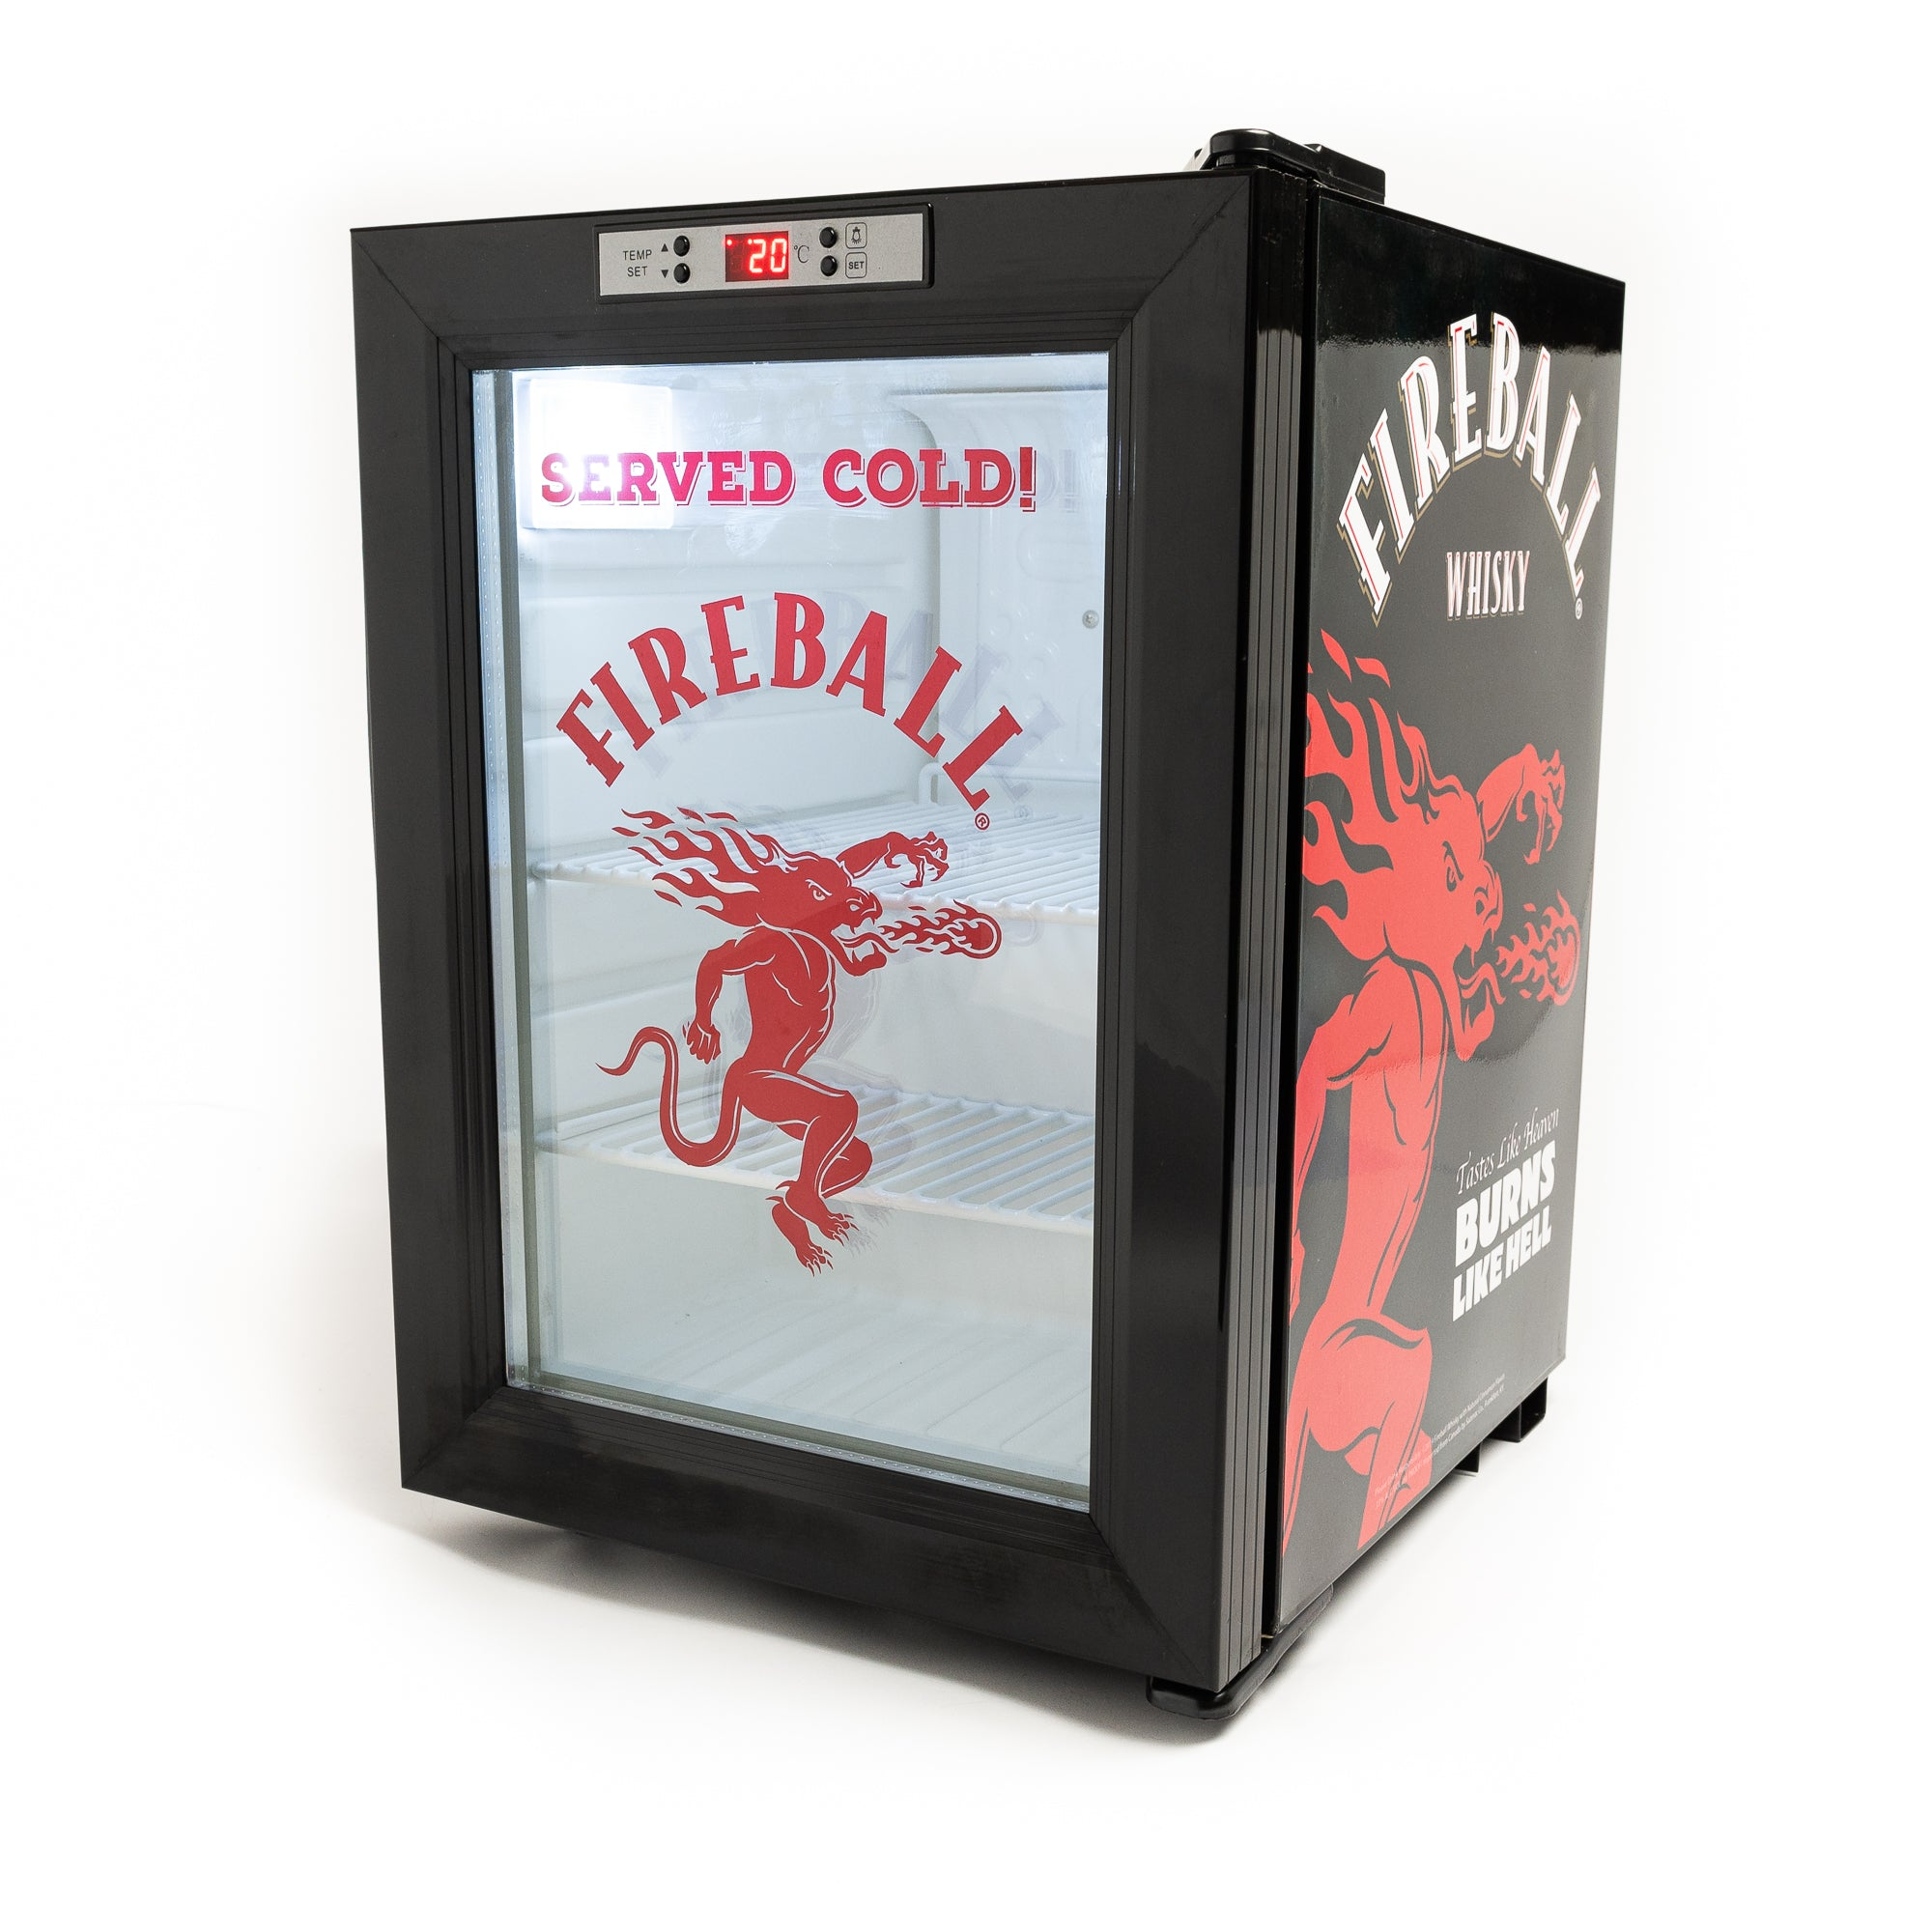 The Fireball Freezer